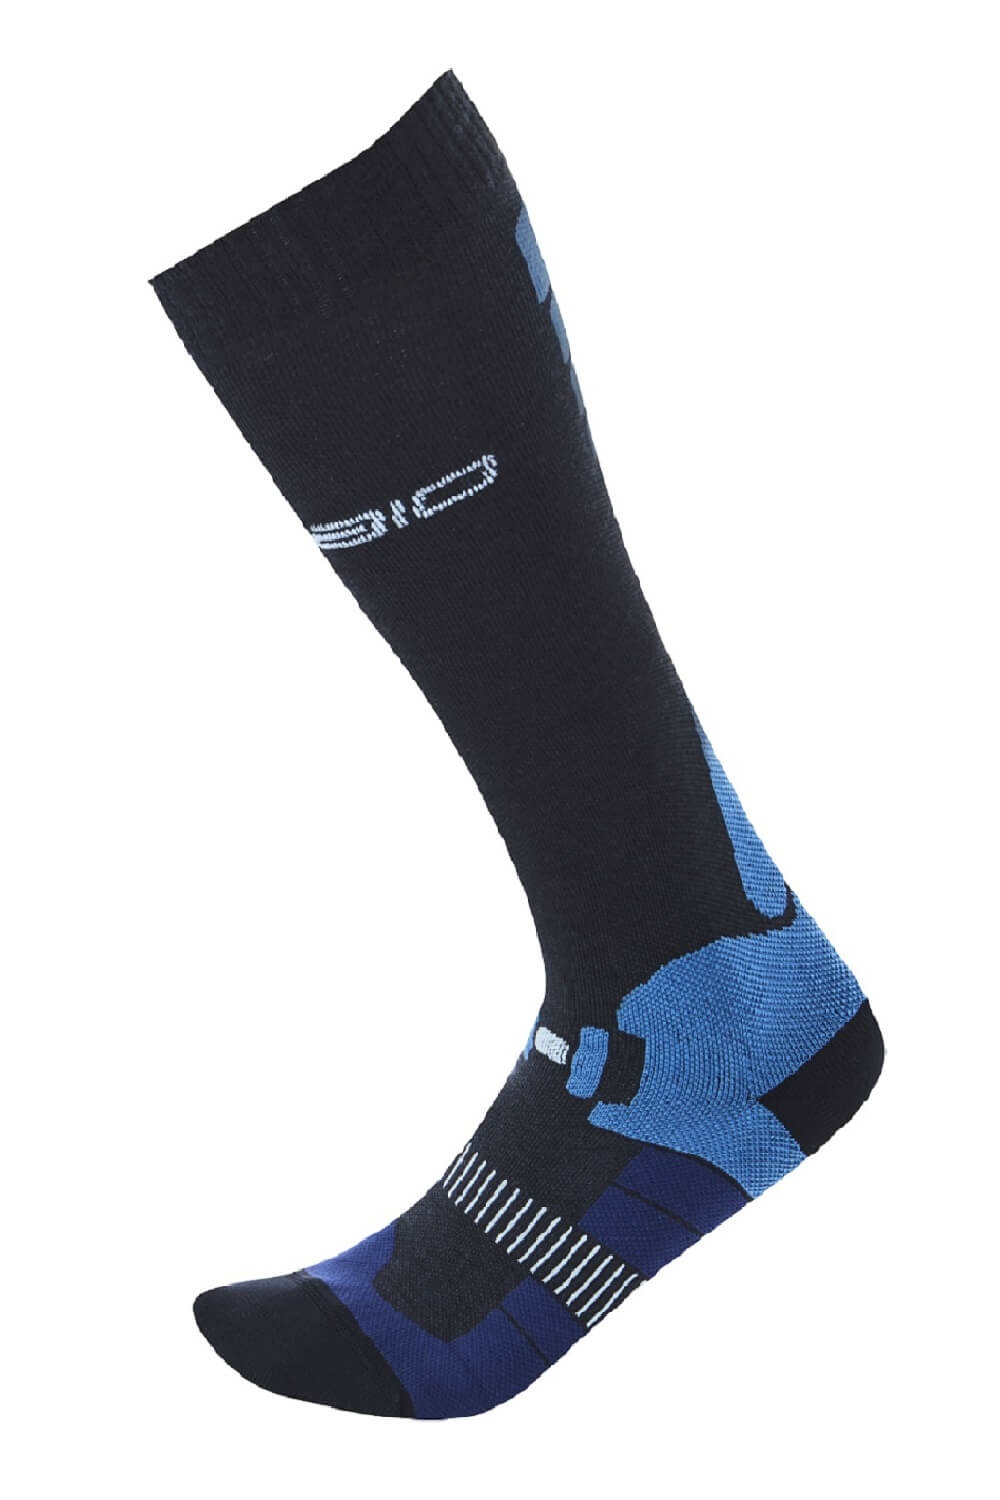 SPAIO SKAR. COMPRESSION WOOL-COMFORT ANTRACITE/BLUE